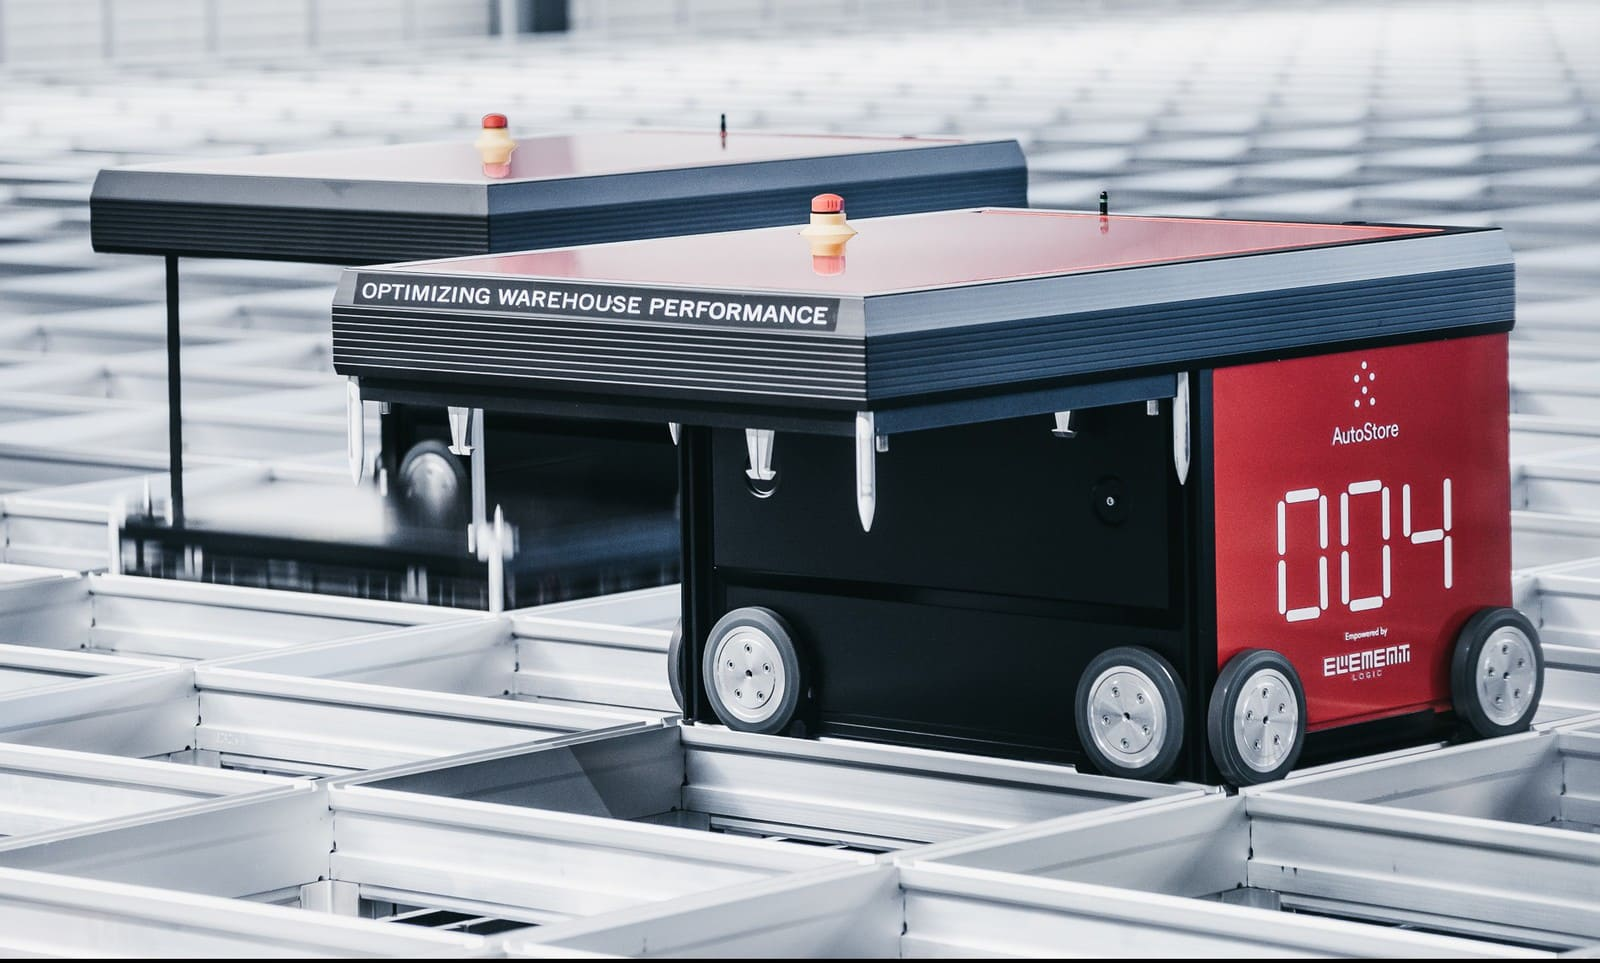 Red AutoStore R5-robots working in warehouse.